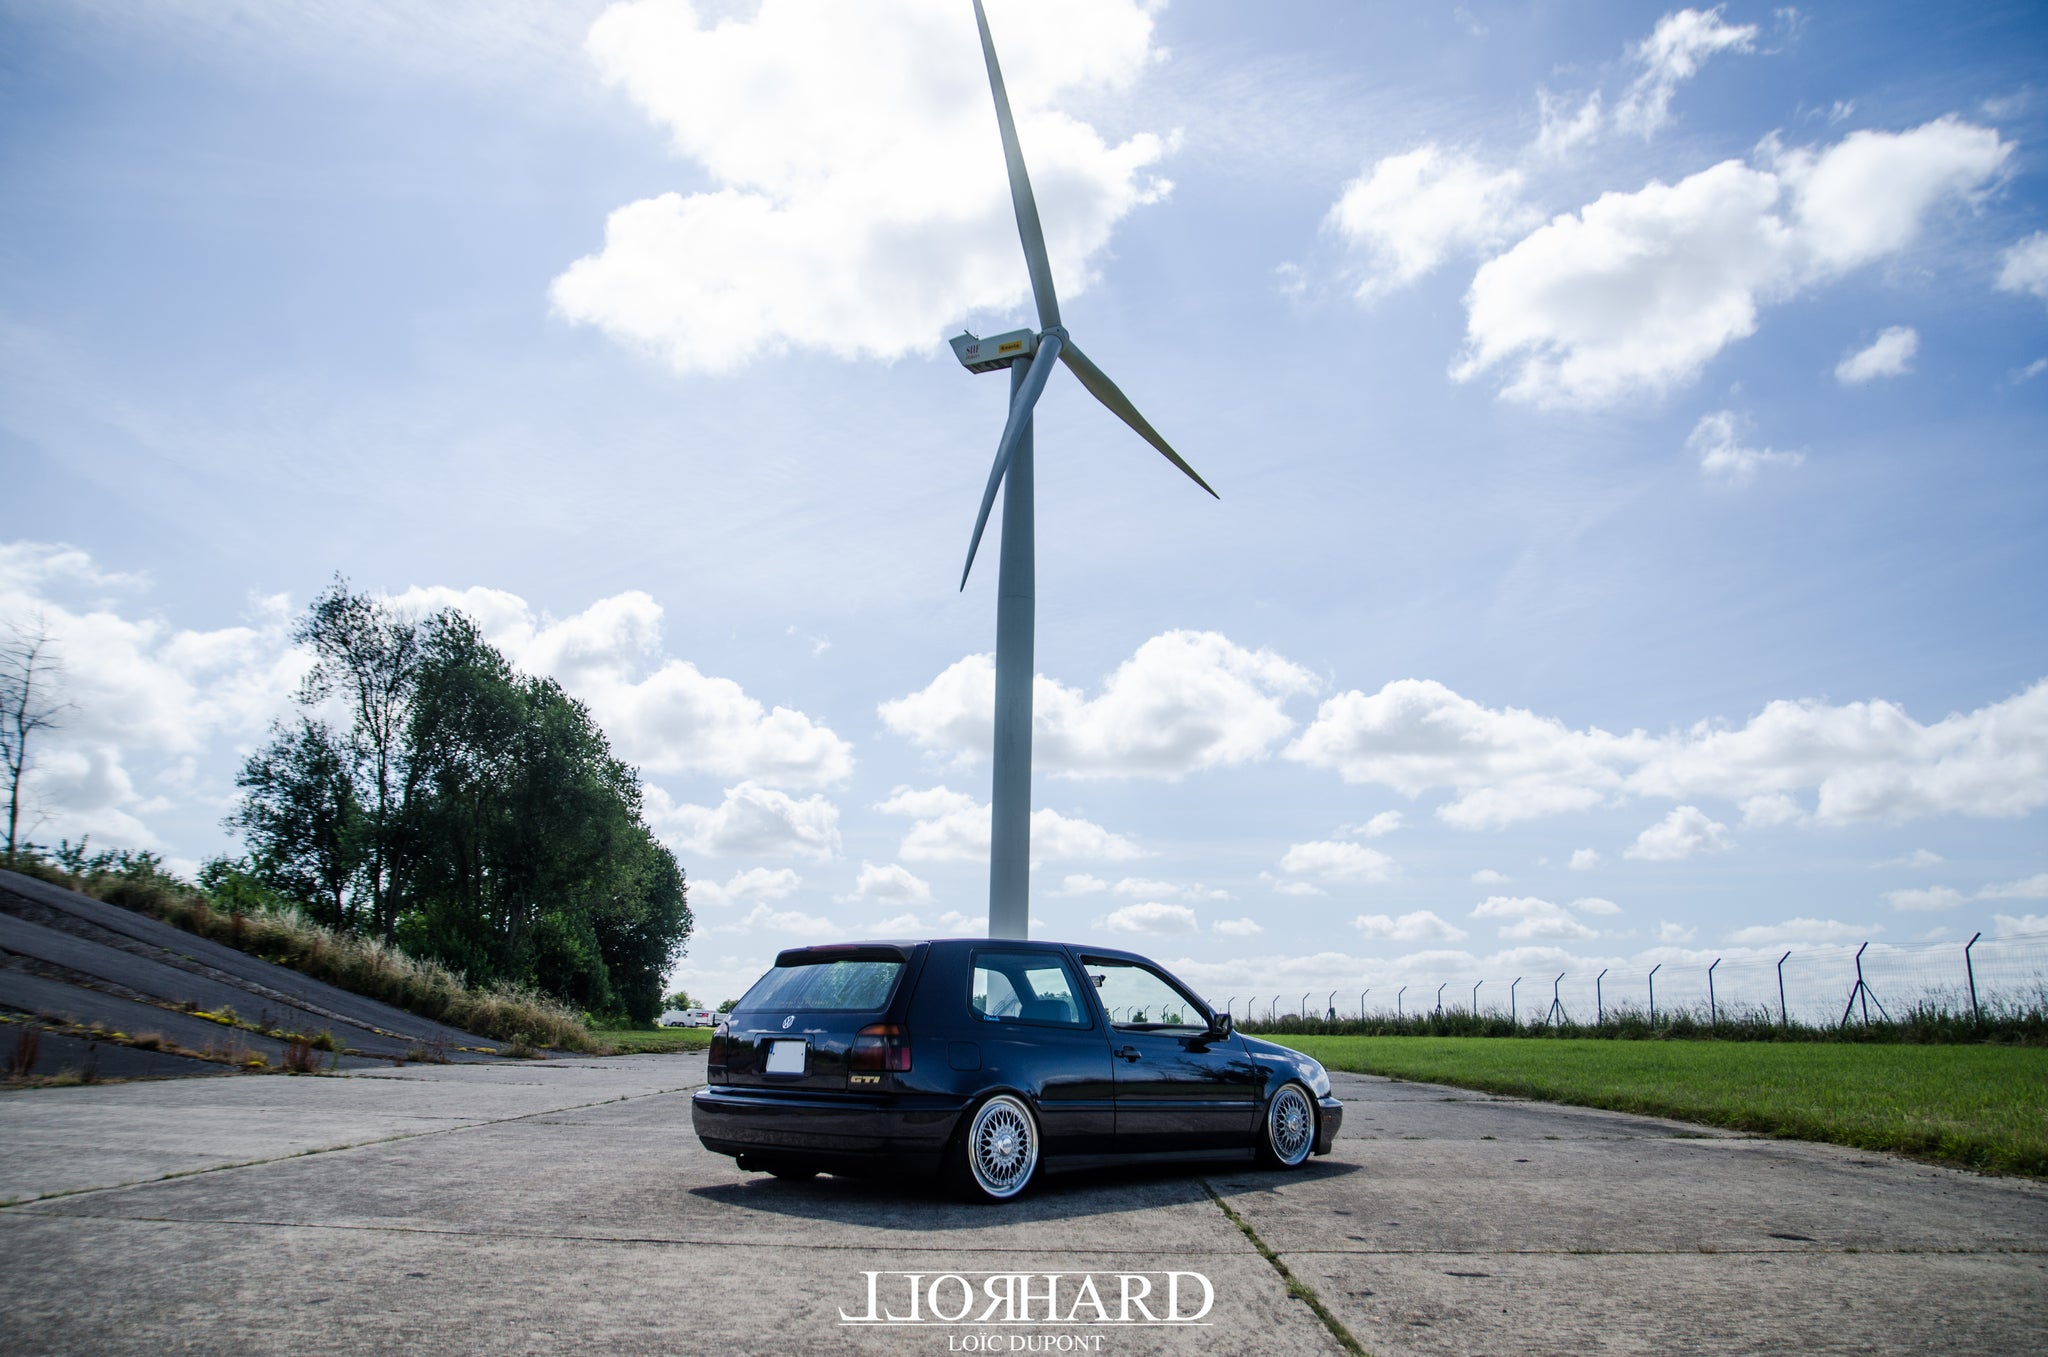 "RollHard Feature - 1994 Volkswagen Golf GTI VR6 USDM. modified Volkswagen, Windsor Blue, Recaro Expert, BBS RS264 RS265 5x114 17"" BBS Golf 3, Aron Norris, Guigui ""Guigui Bless"" Guillaume, Tokan Photography, Loic Dupont"